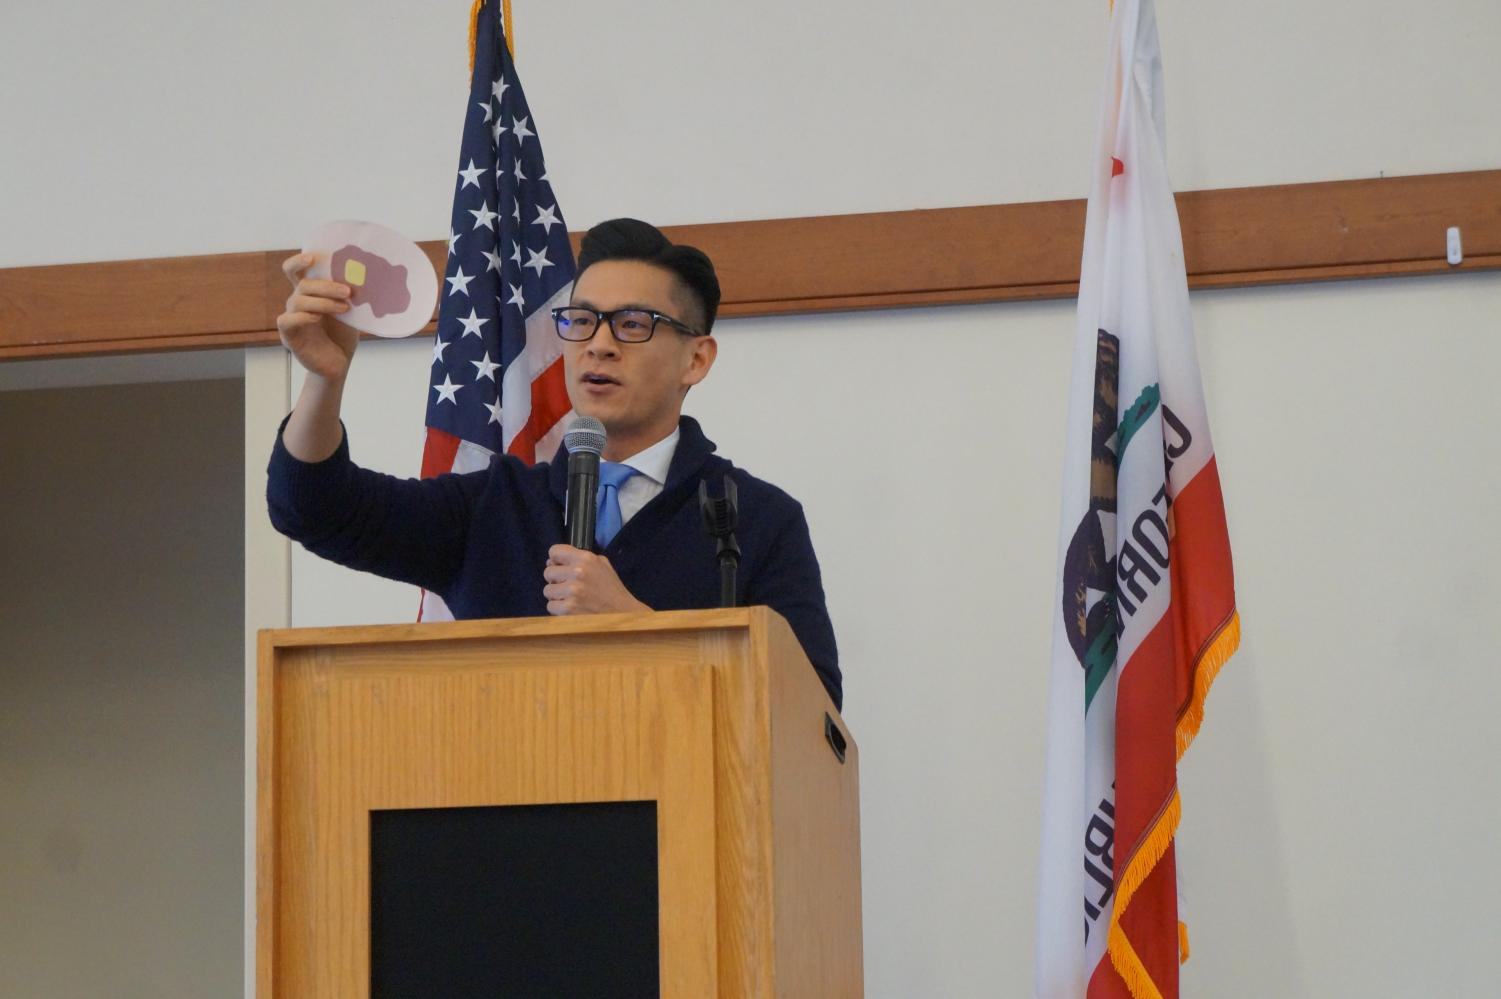 Assemblyman Evan Low holds community event for members to hear out proposals and suggestions